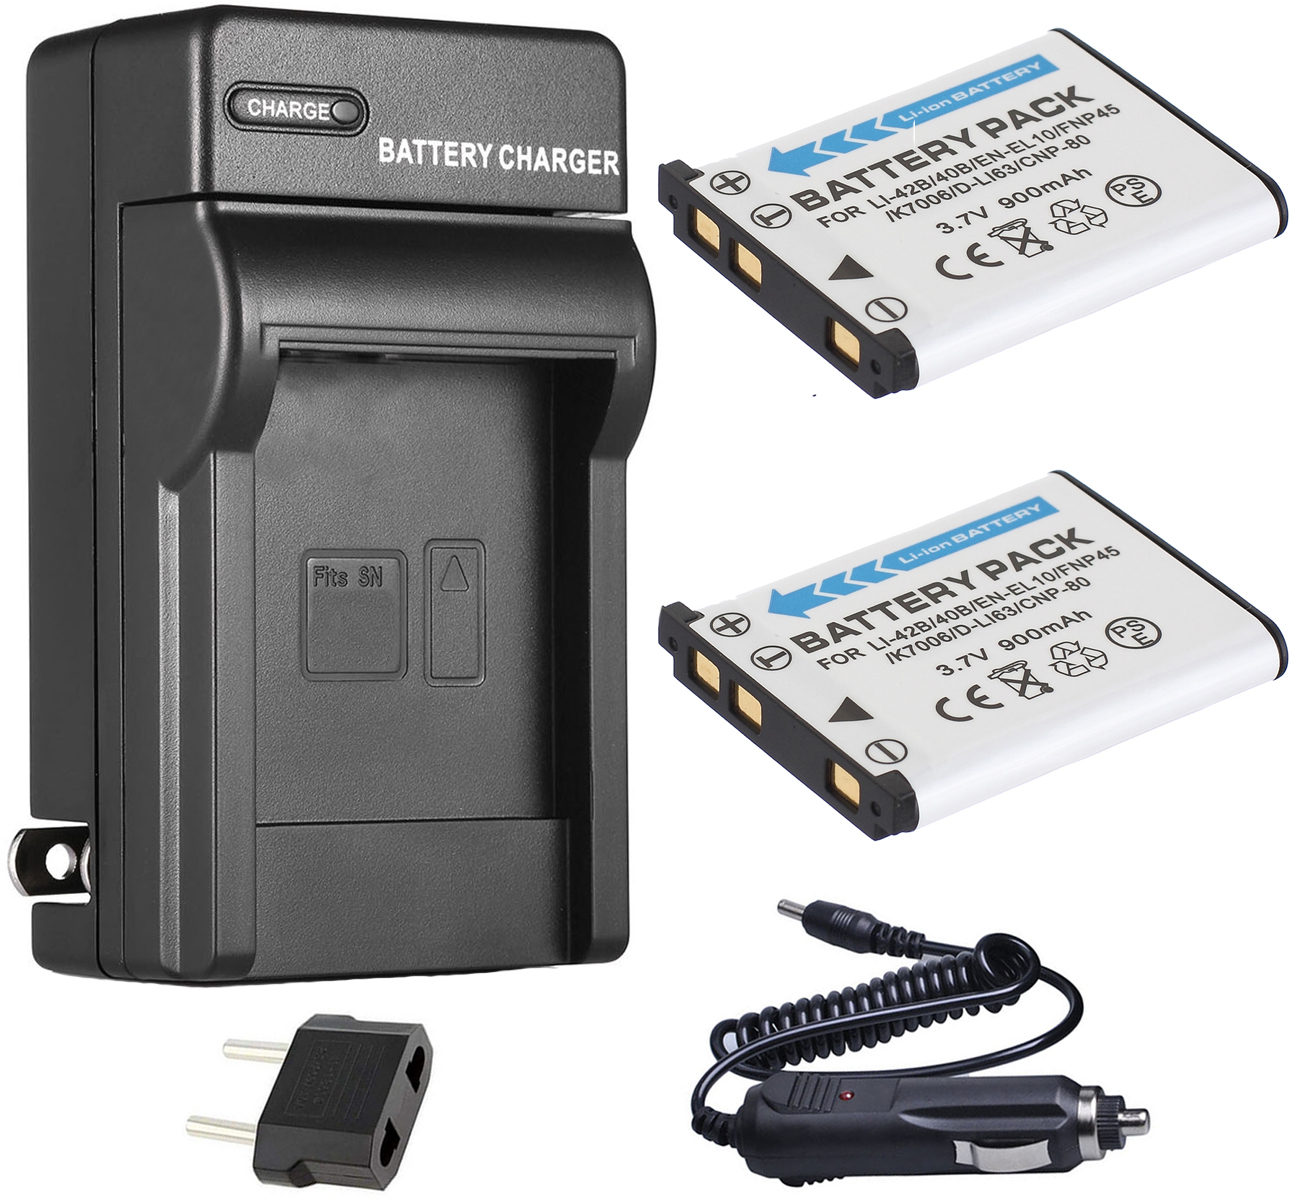 JX550 FUJI FUJIFILM FINEPIX JX530 JX580 DIGITAL CAMERA HOME BATTERY CHARGER